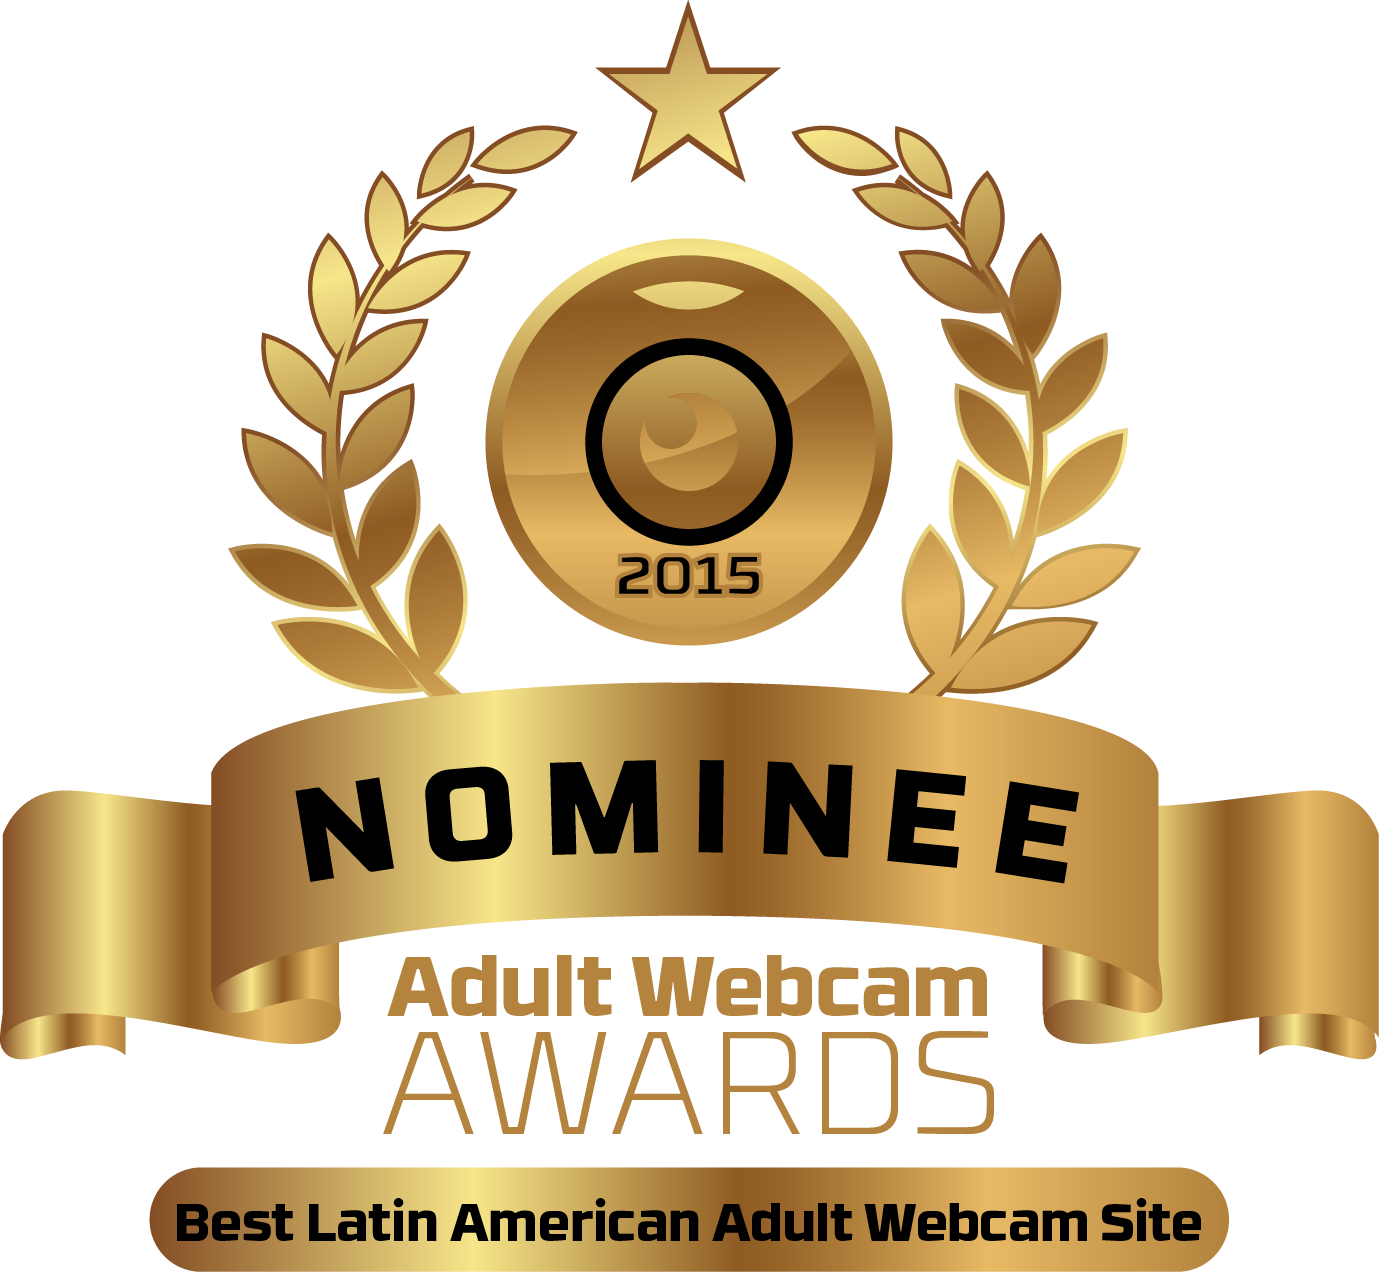 Best Latin American Adult Webcam Site